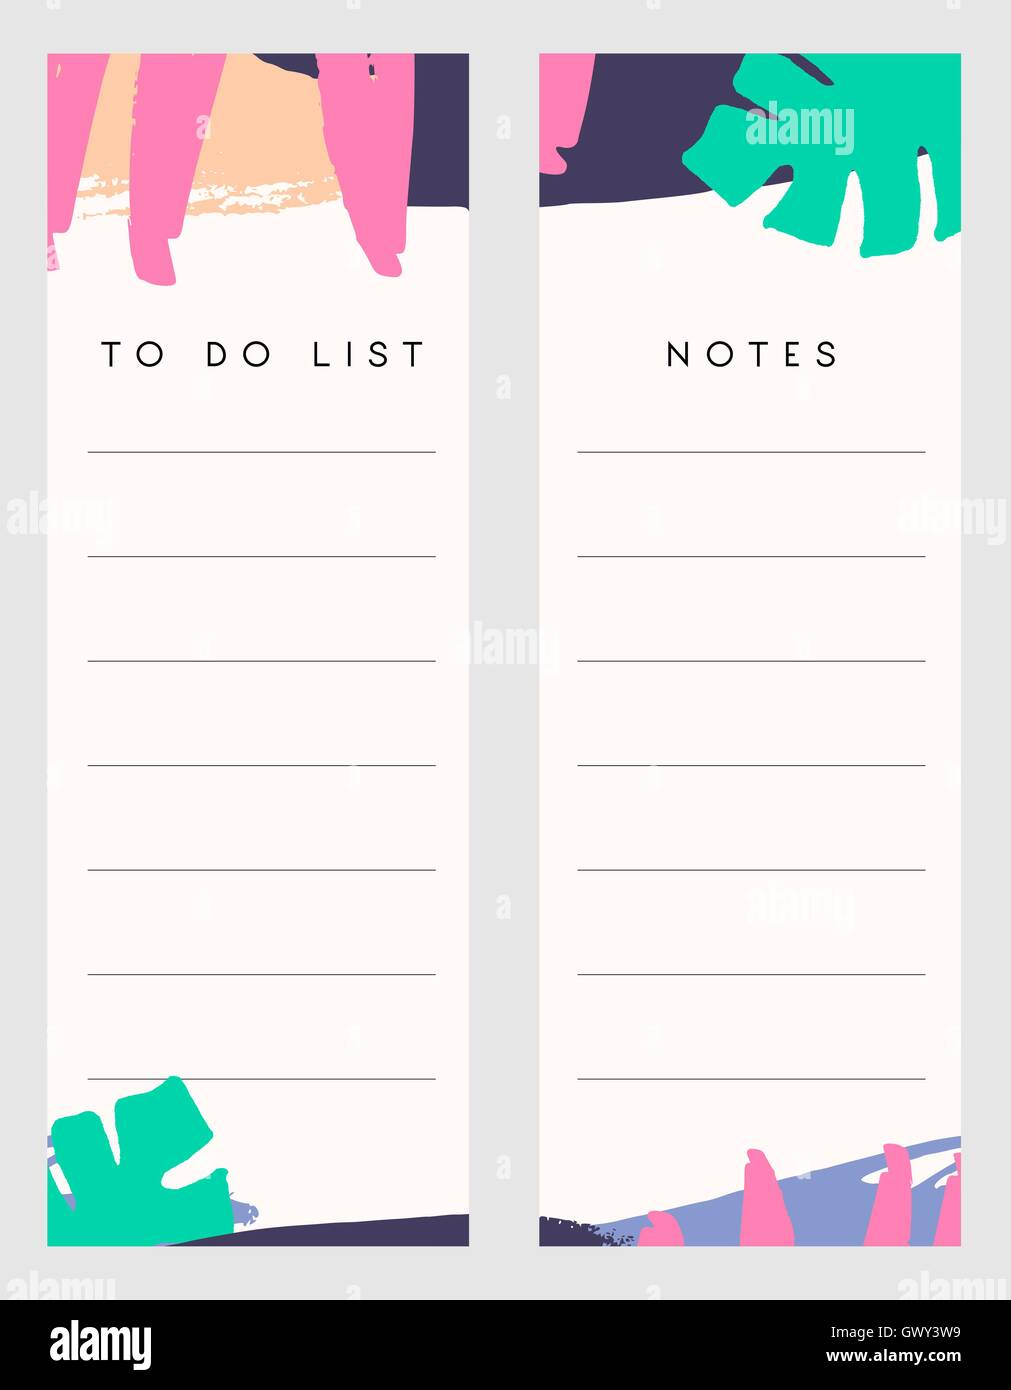 photo about Notes Template Printable called Printable notes and toward do checklist template types embellished